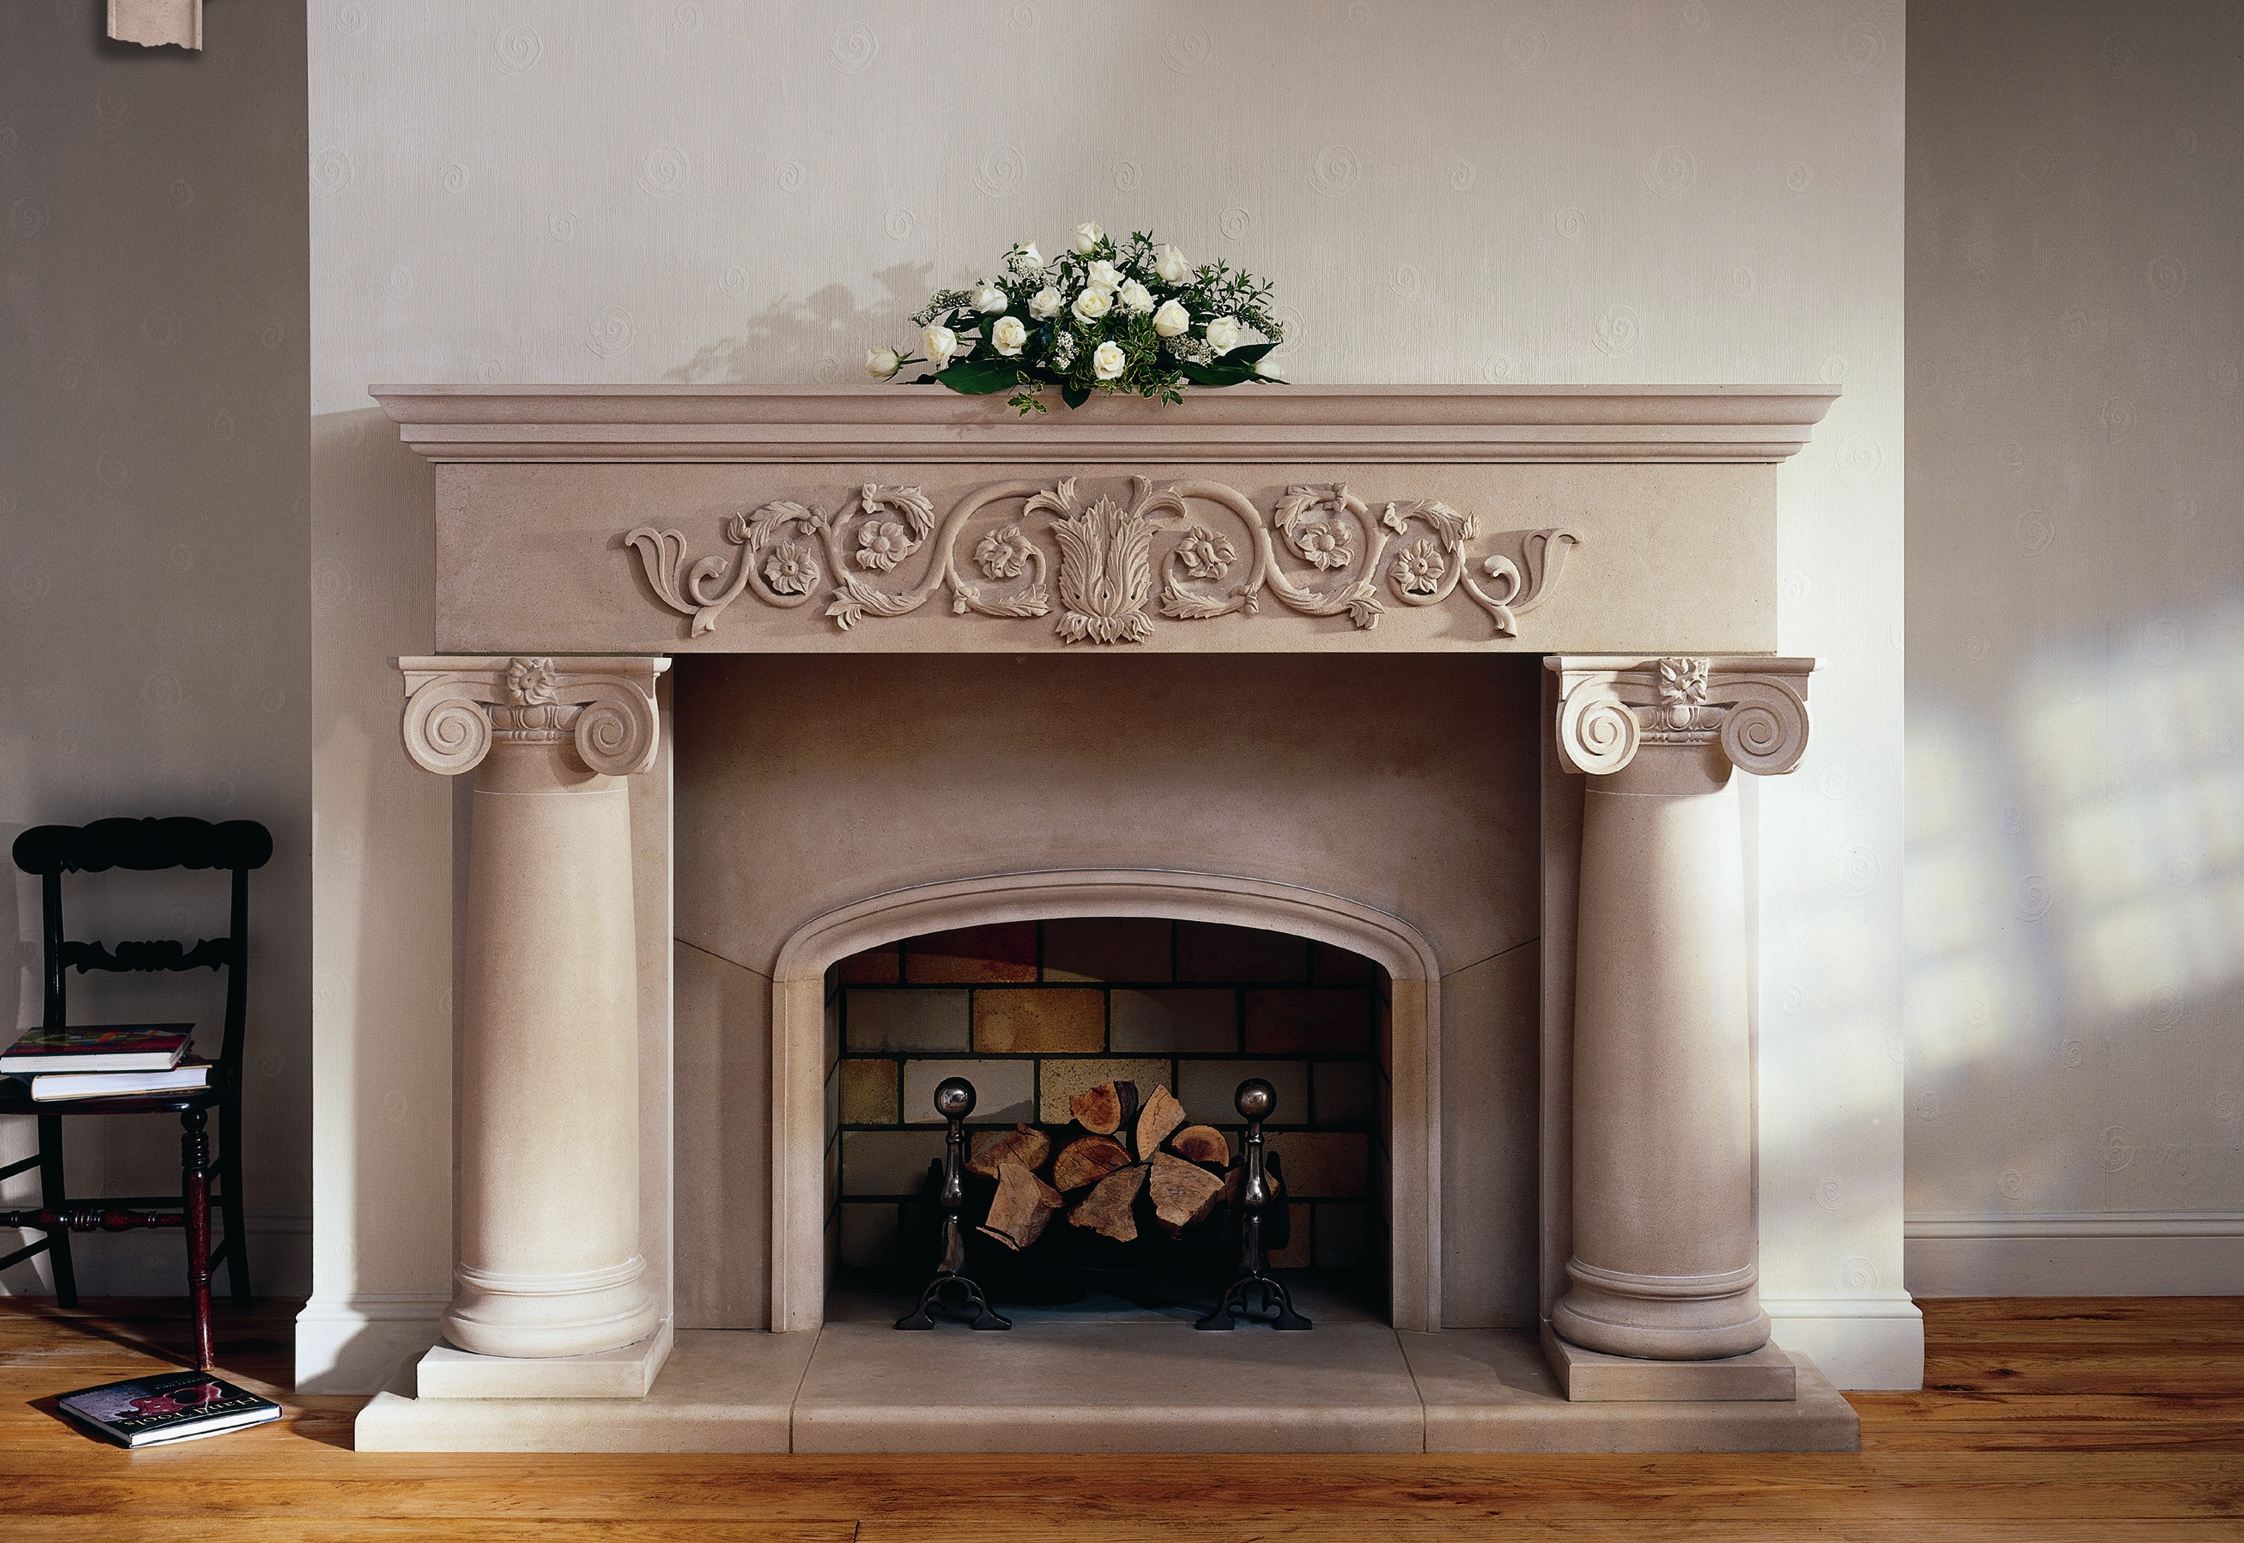 13. Classical Portland Basebed stone fireplace with heavily carved lintol and ionic columns and capitols – Staffordshire